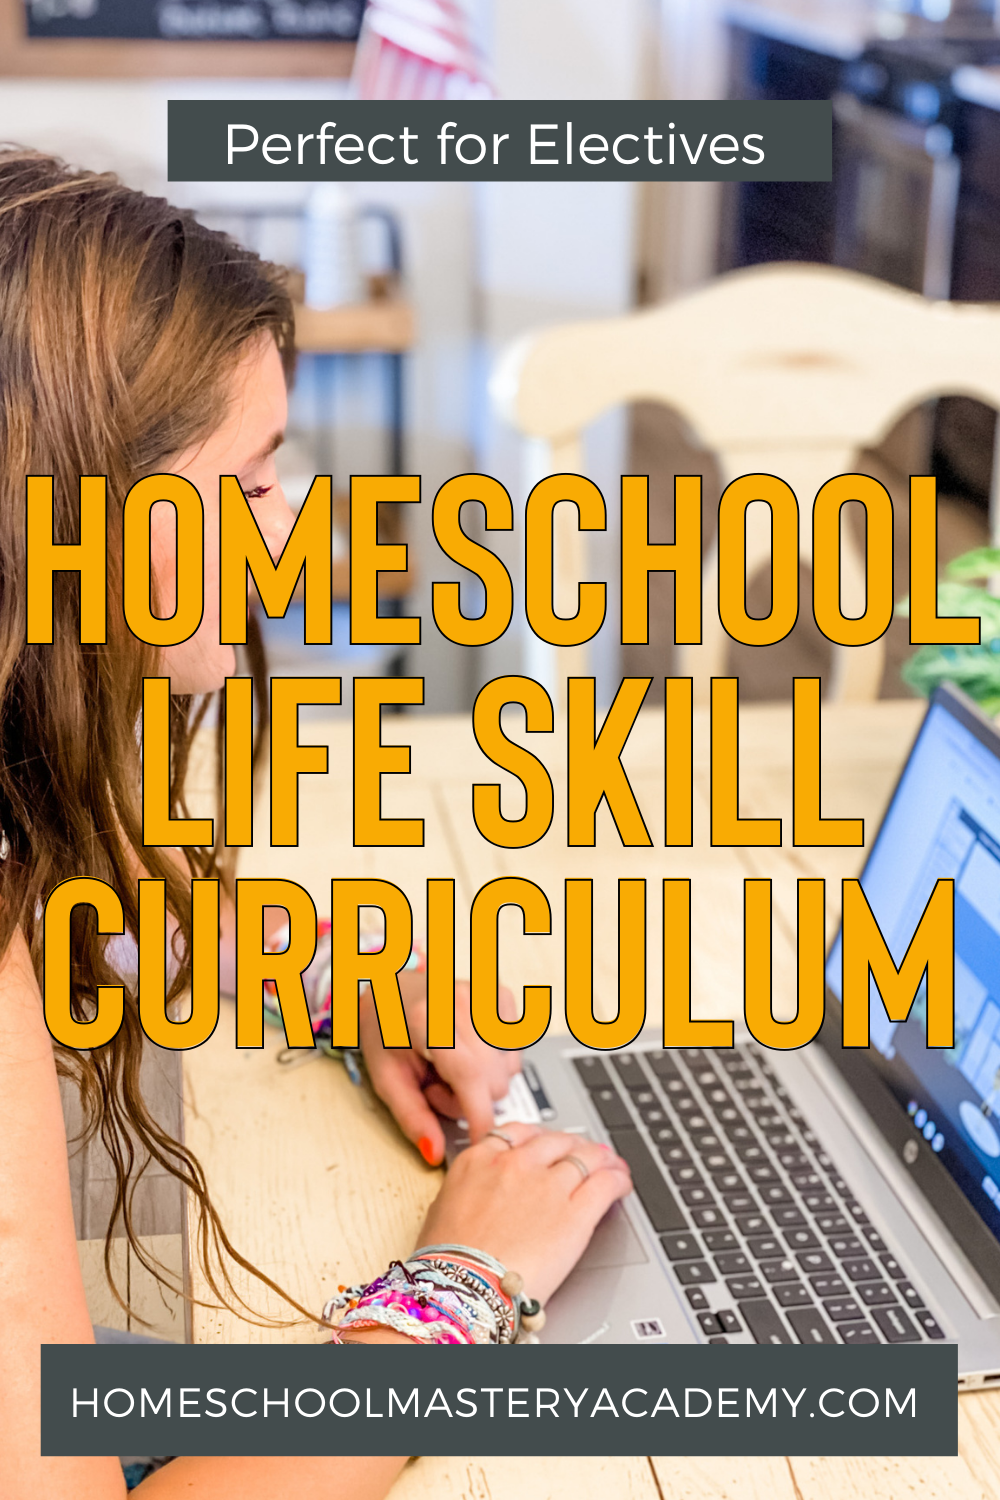 Do you need a life skill curriculum for your high school student that covers everything they need to know before adulthood? Look no further! #lifeskills #homeschool #homeschoolcurriculum #homeschoolteens